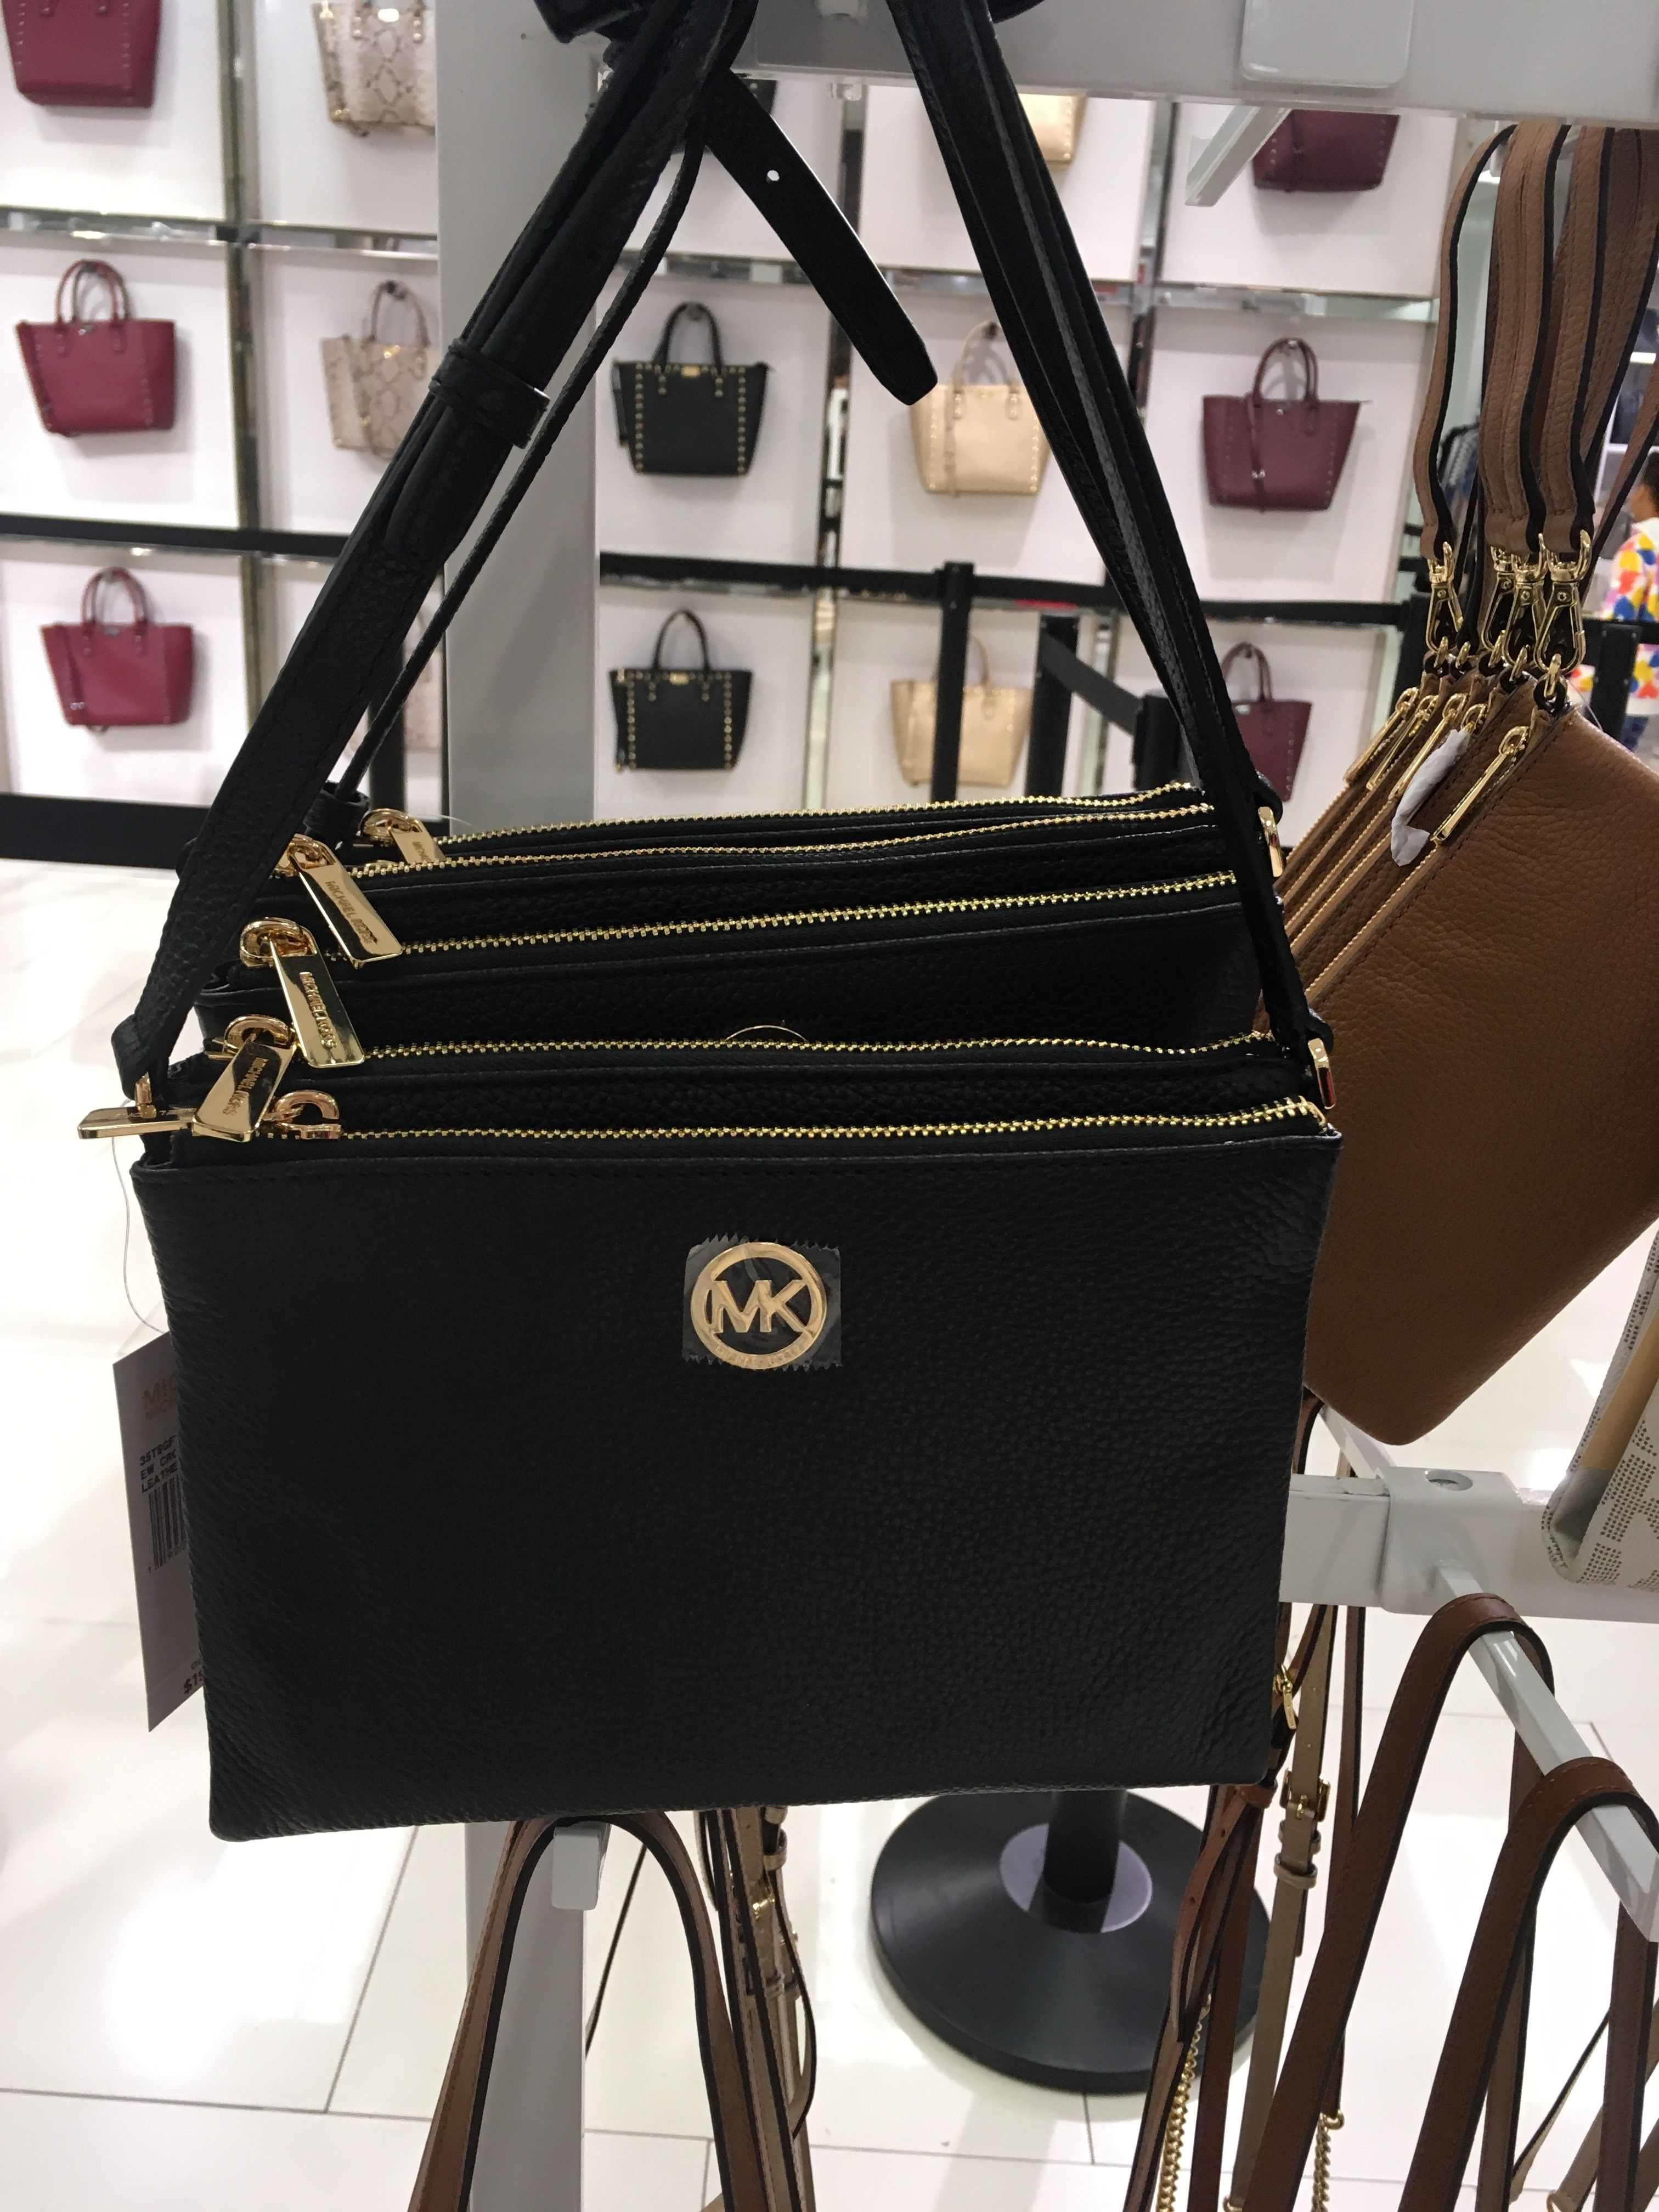 2ac39684e48d Awesome Concealed Carry Purse by Michael Kors (wish they had a better color  selection)